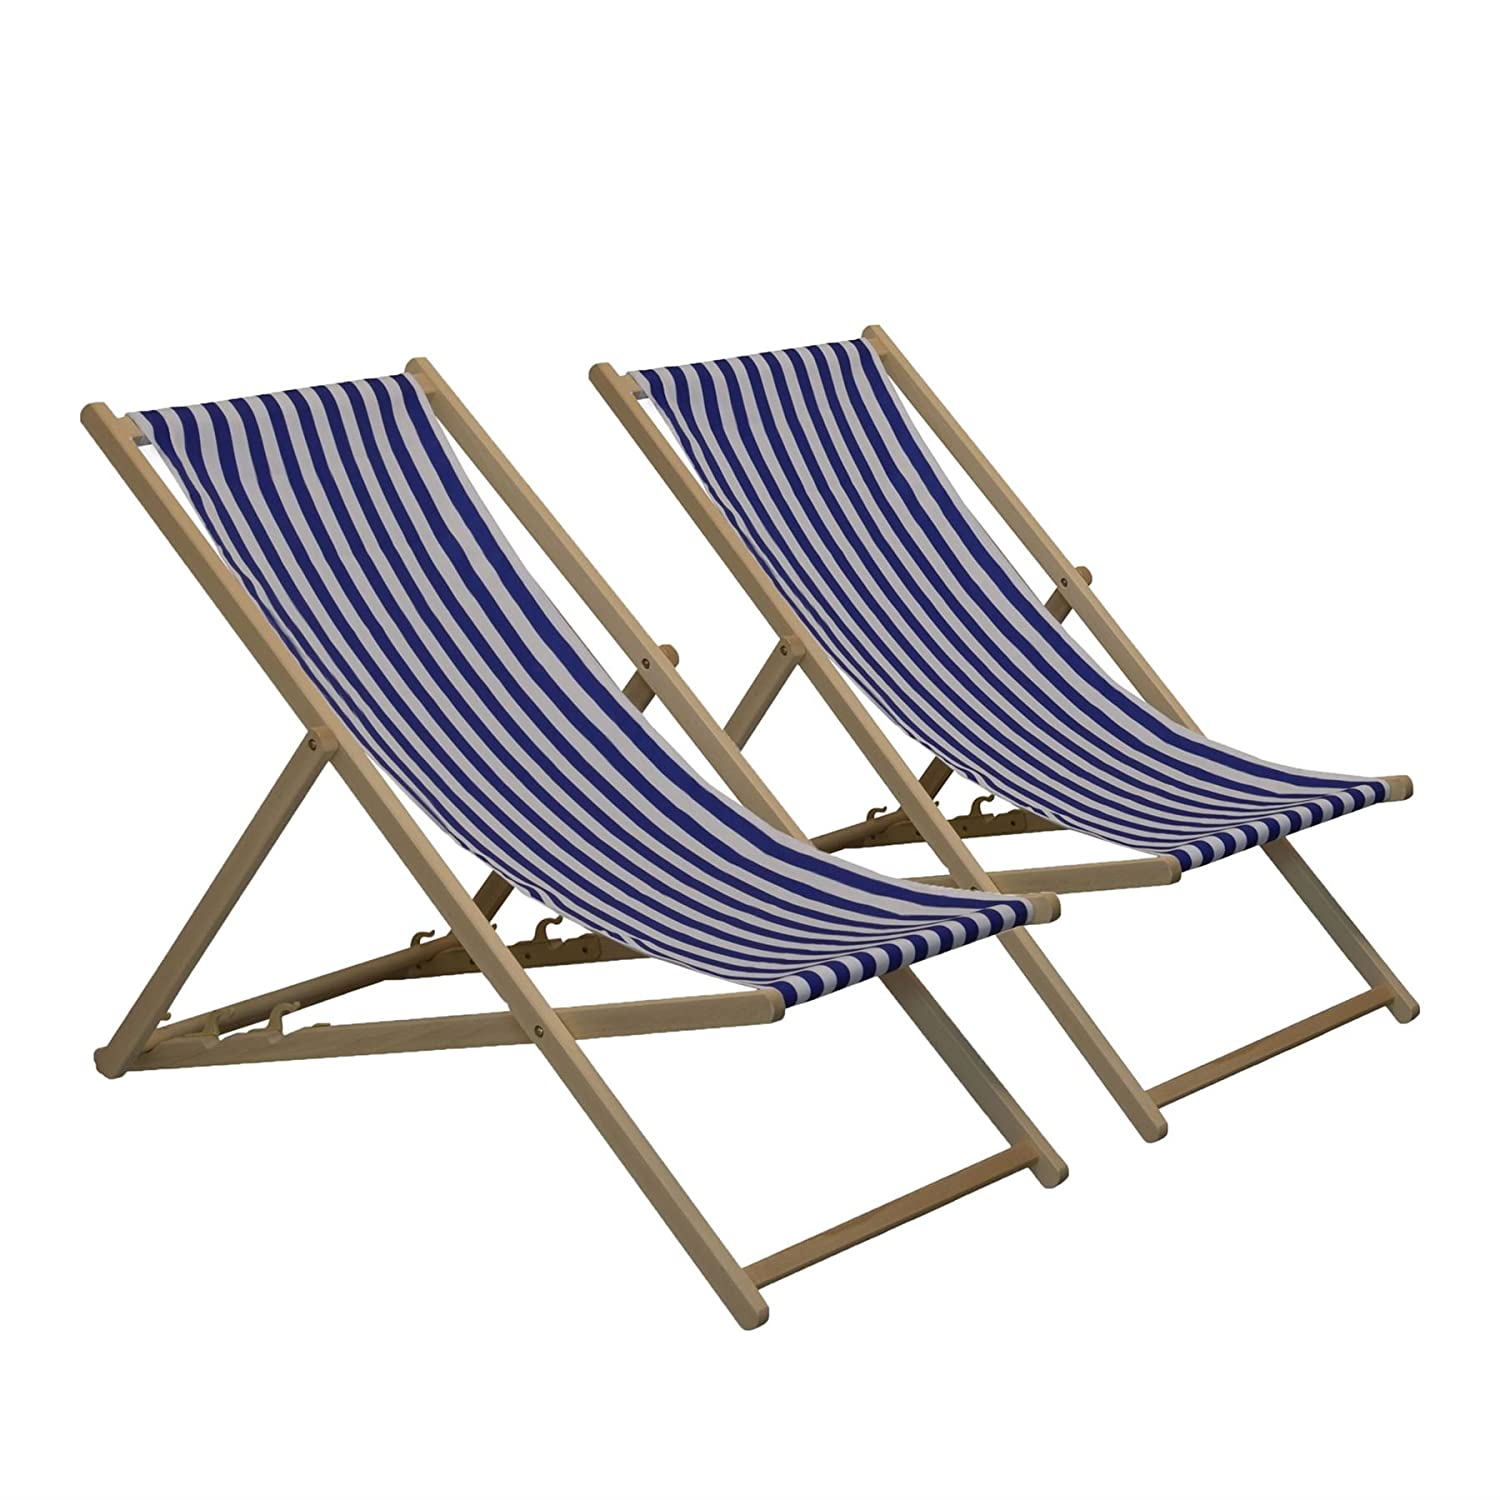 Traditional Adjustable Garden / Beach-style Deck Chair - Blue / White Stripe - Pack of 2 Harbour Housewares